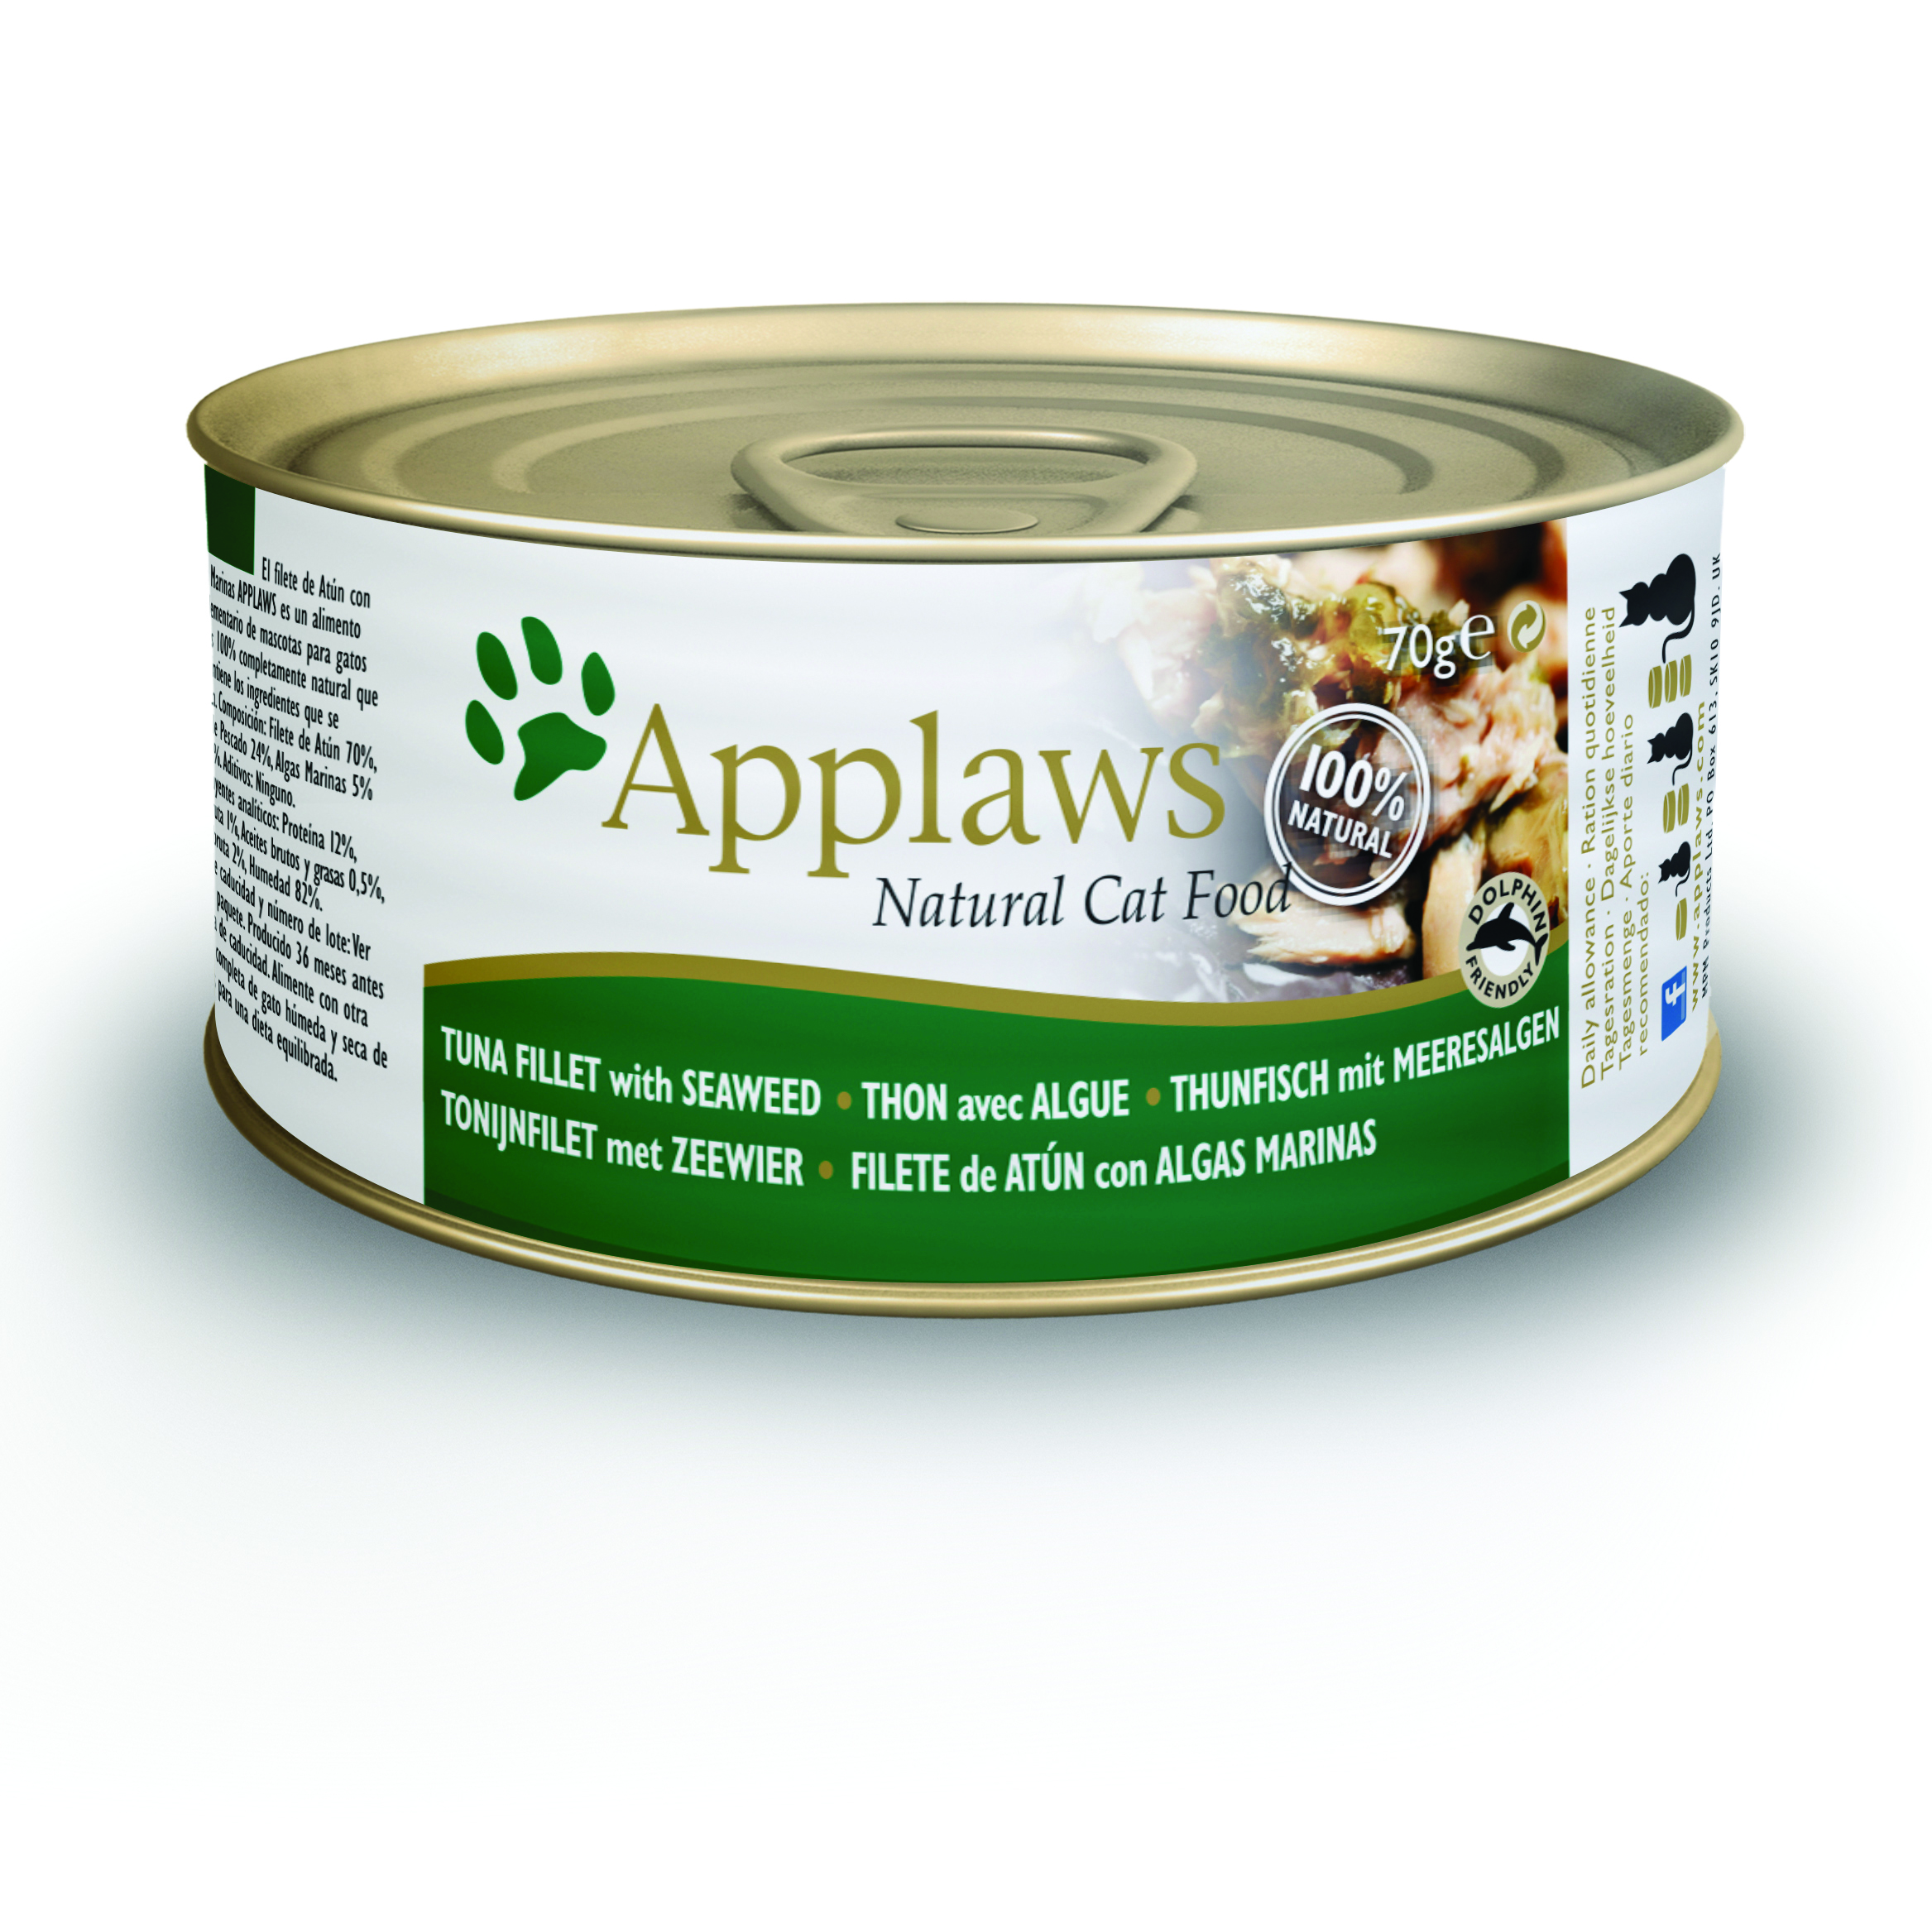 Latinha gato Applaws 70g - Filete de atum com algas